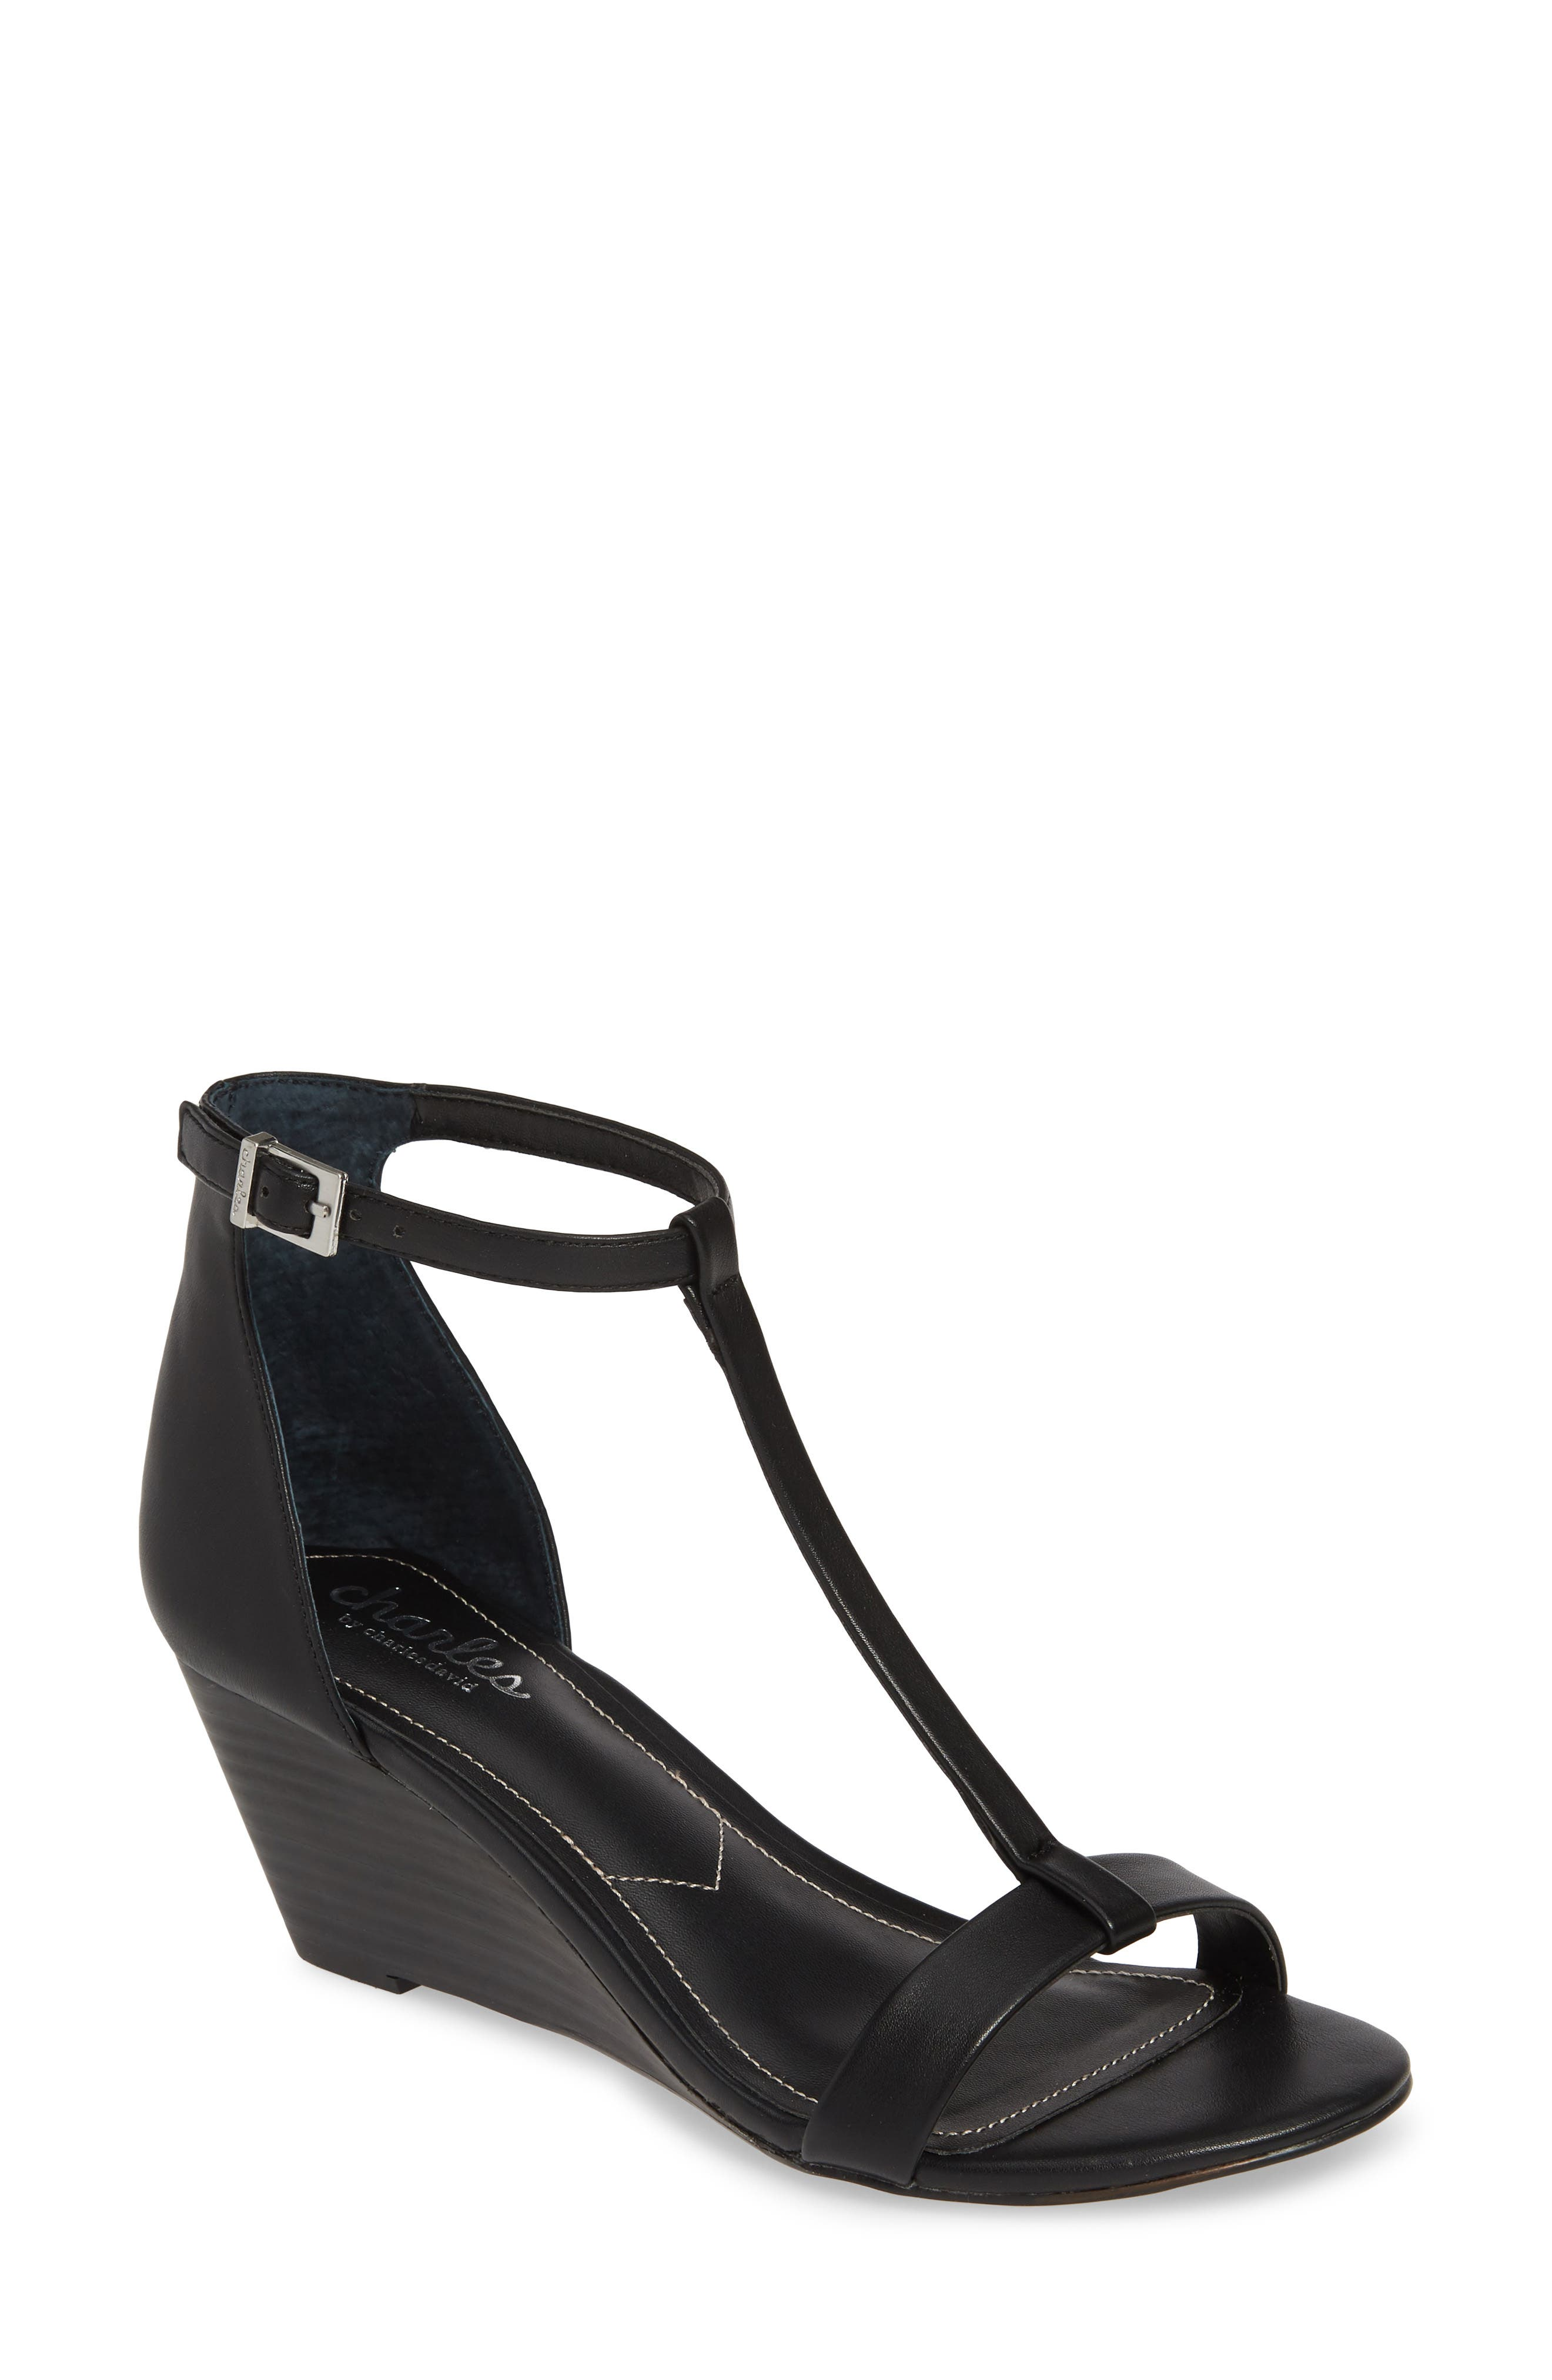 CHARLES BY CHARLES DAVID Georgette Wedge Sandal, Main, color, BLACK FAUX LEATHER